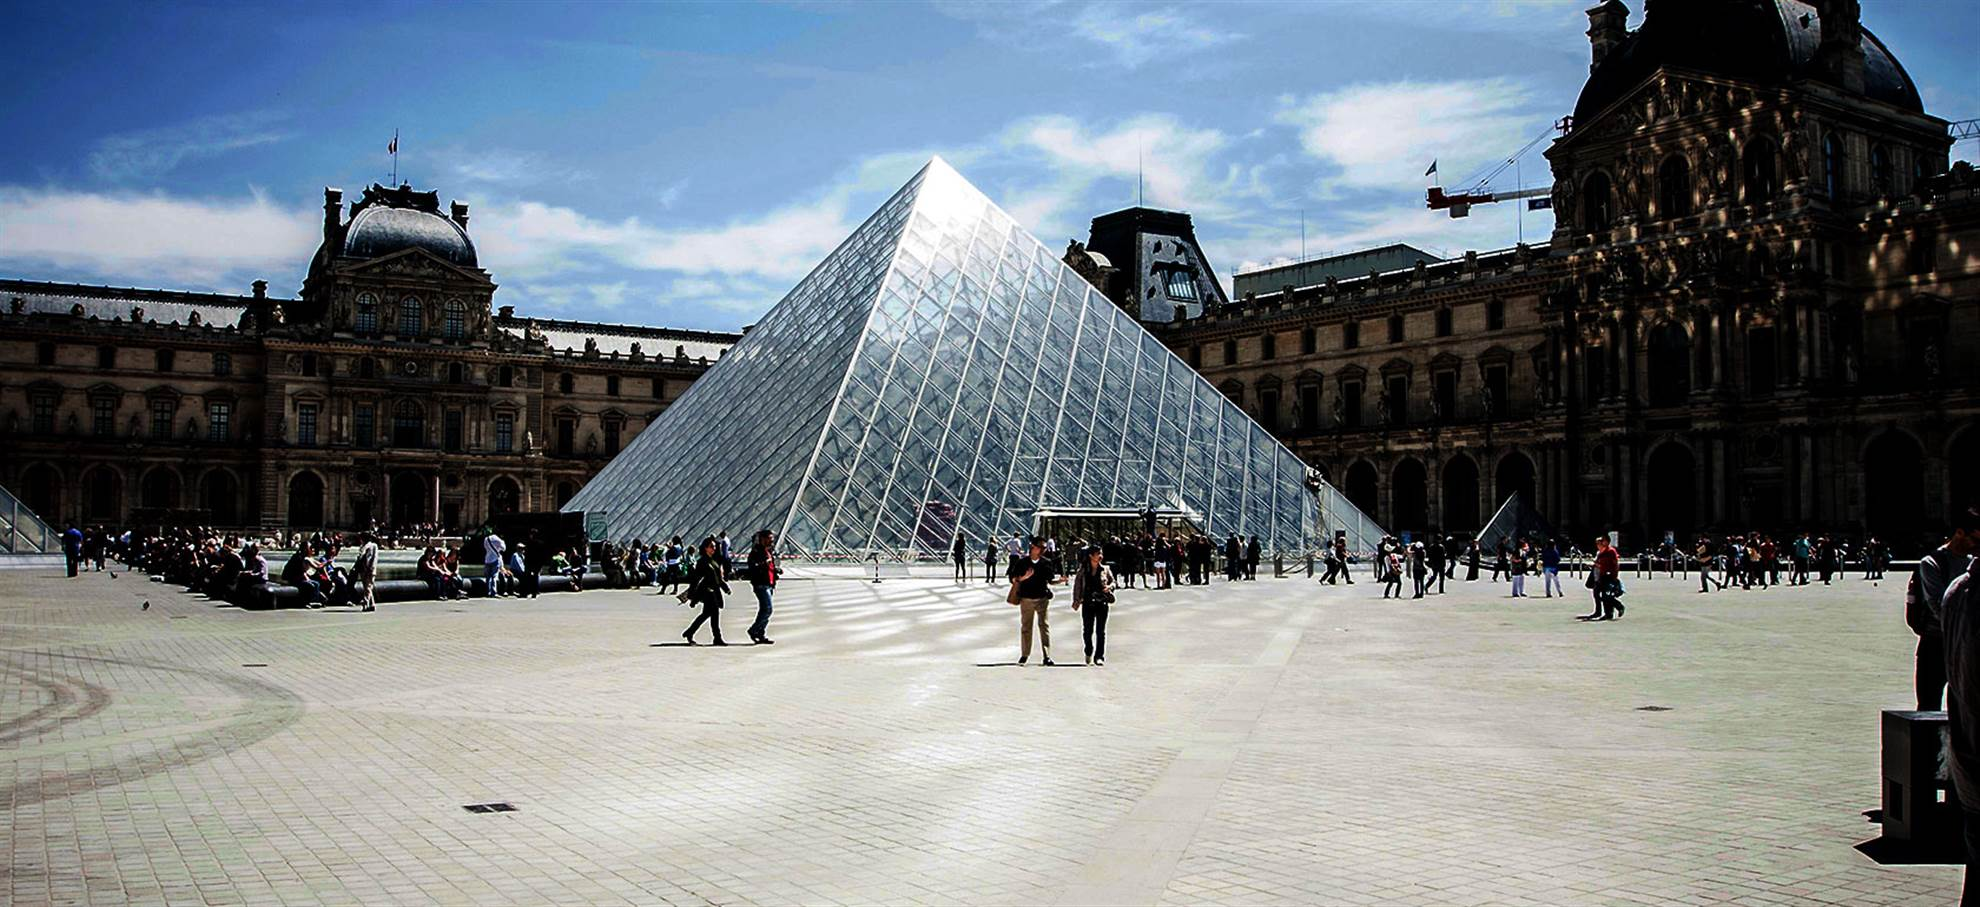 Audio guided visit of the Louvre Museum